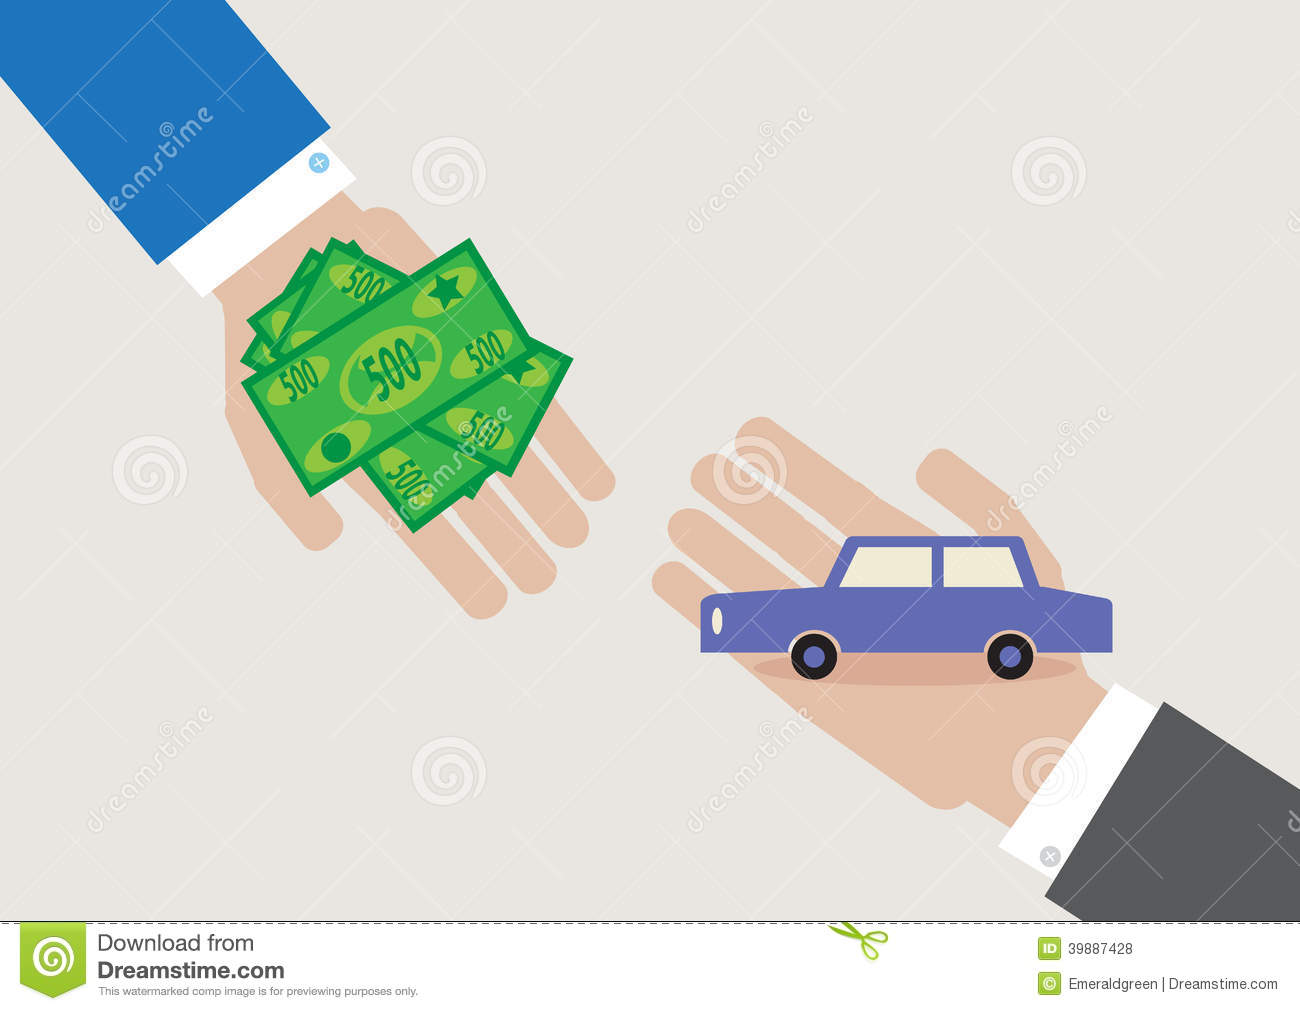 cartoon style, vector illustration of a car transaction.